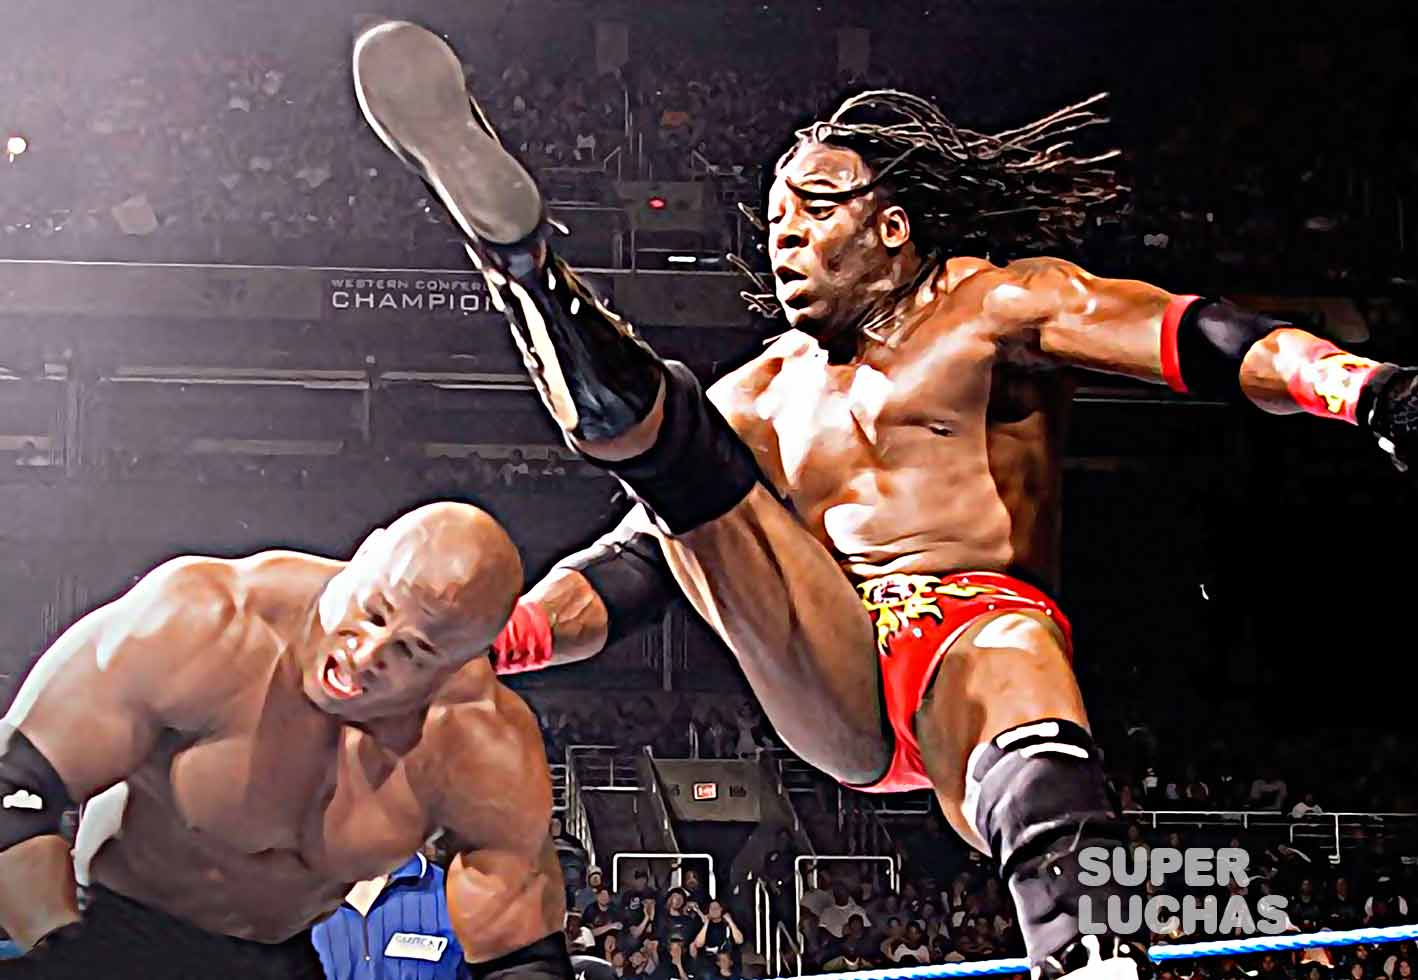 Booker T vs Bobby Lashley